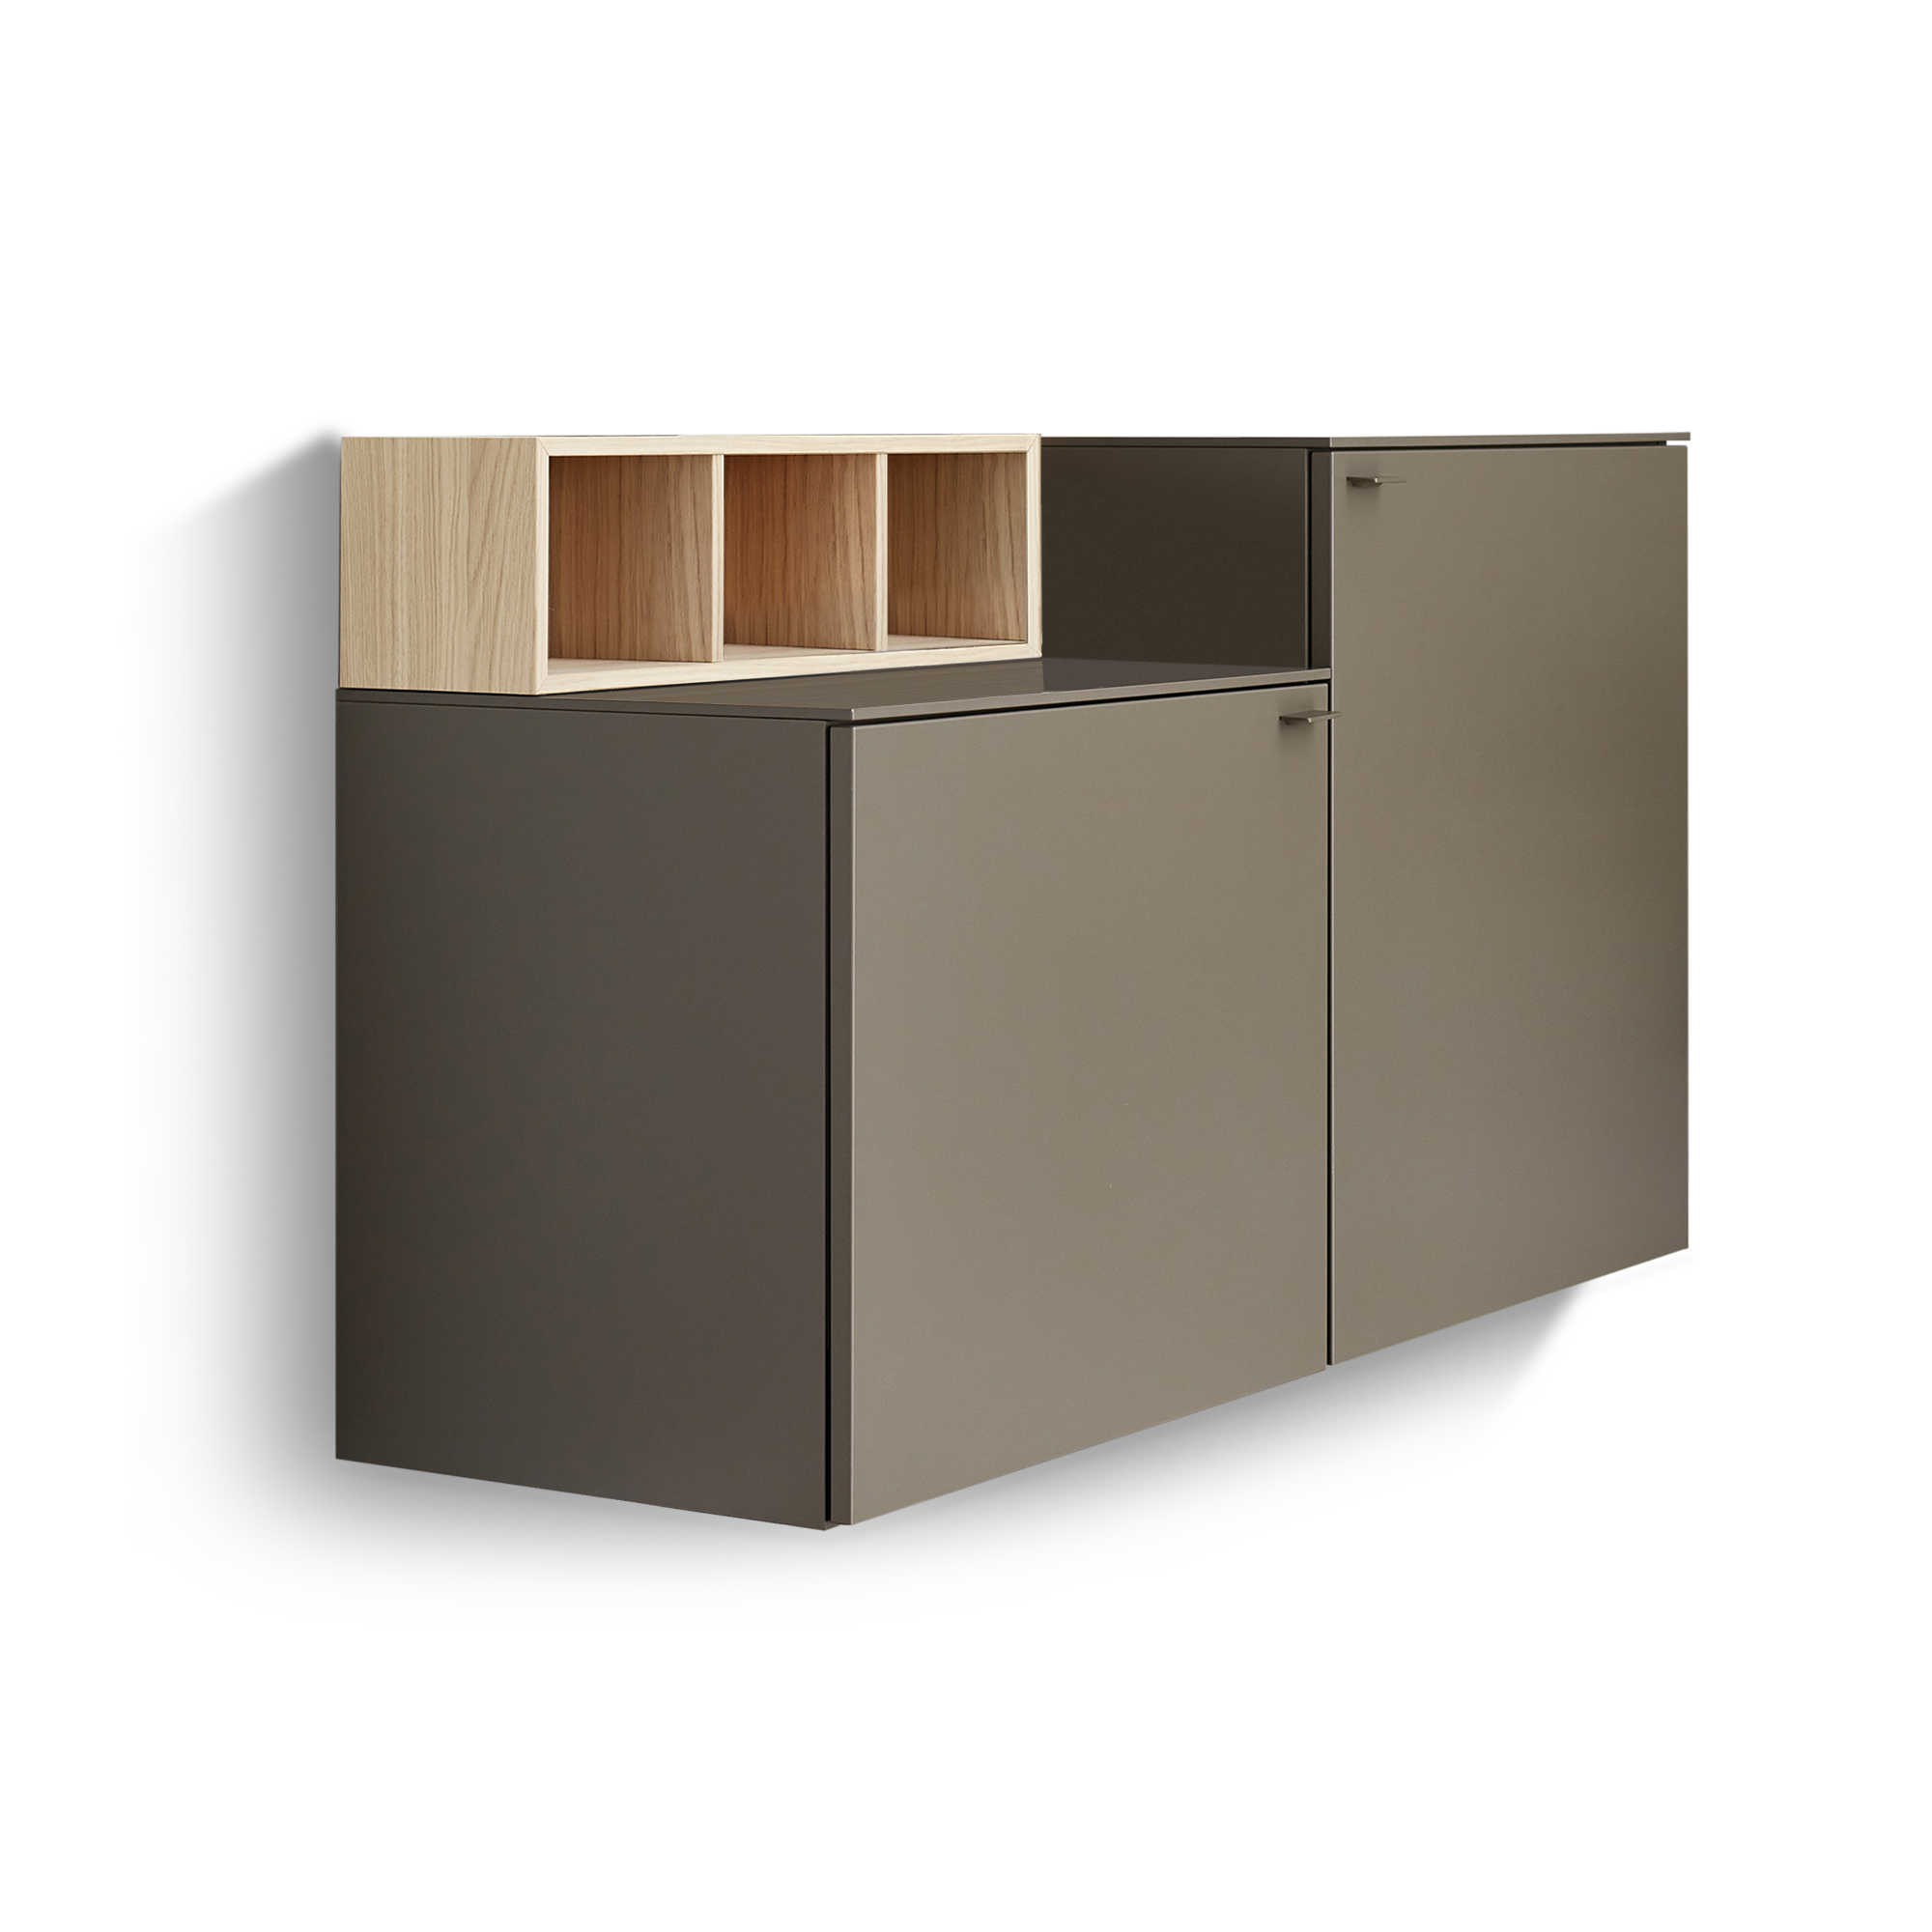 sch ner wohnen sideboard geo s621 grau holz online kaufen bei woonio. Black Bedroom Furniture Sets. Home Design Ideas